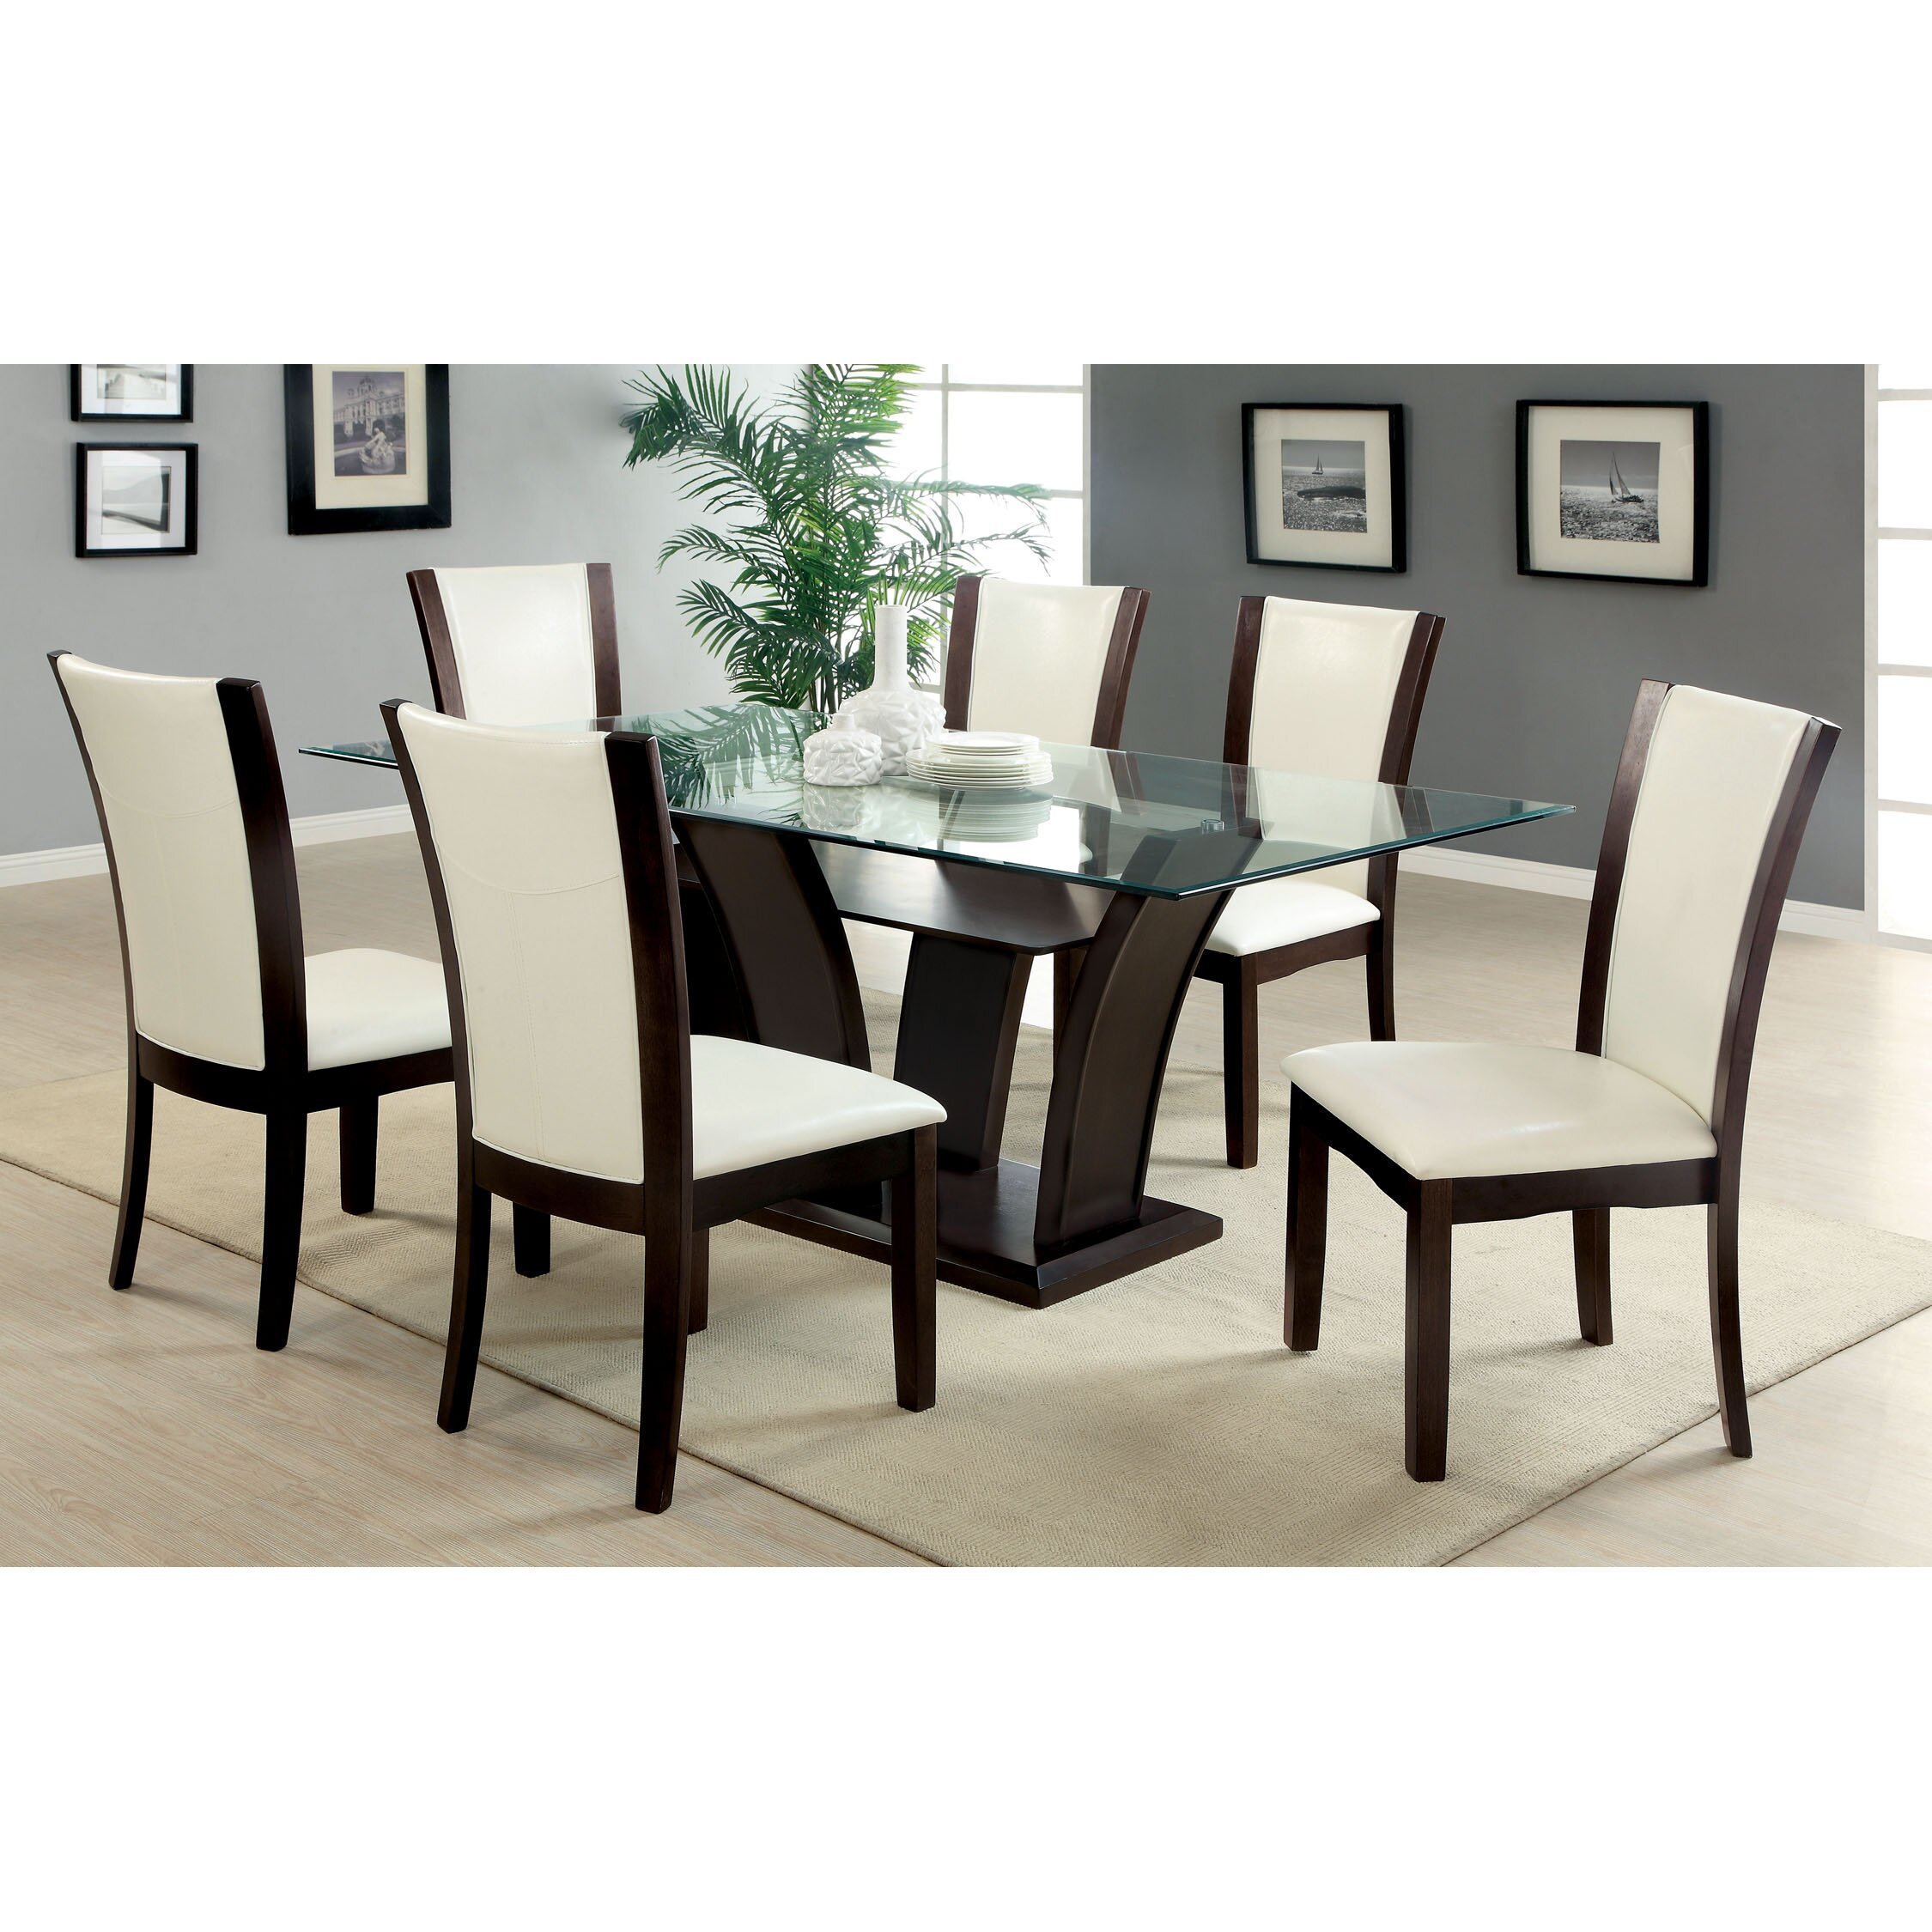 Hokku designs carmilla 7 piece dining set reviews wayfair for Dining room furniture set